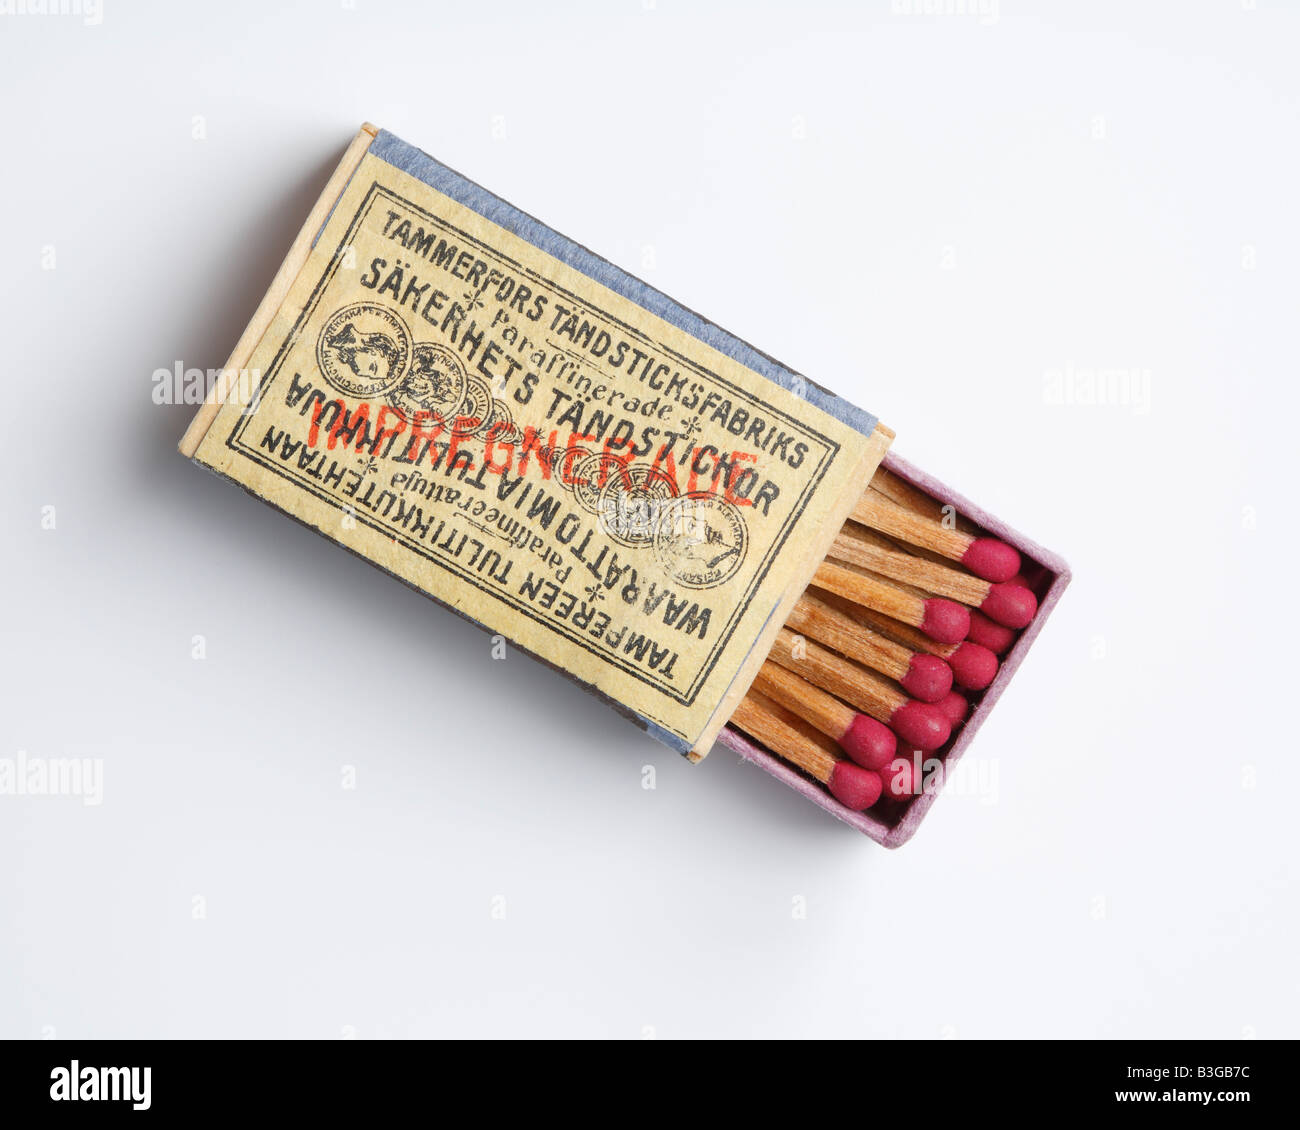 Old box of safety matches manufactured in Tampere Finland in 19th century - Stock Image